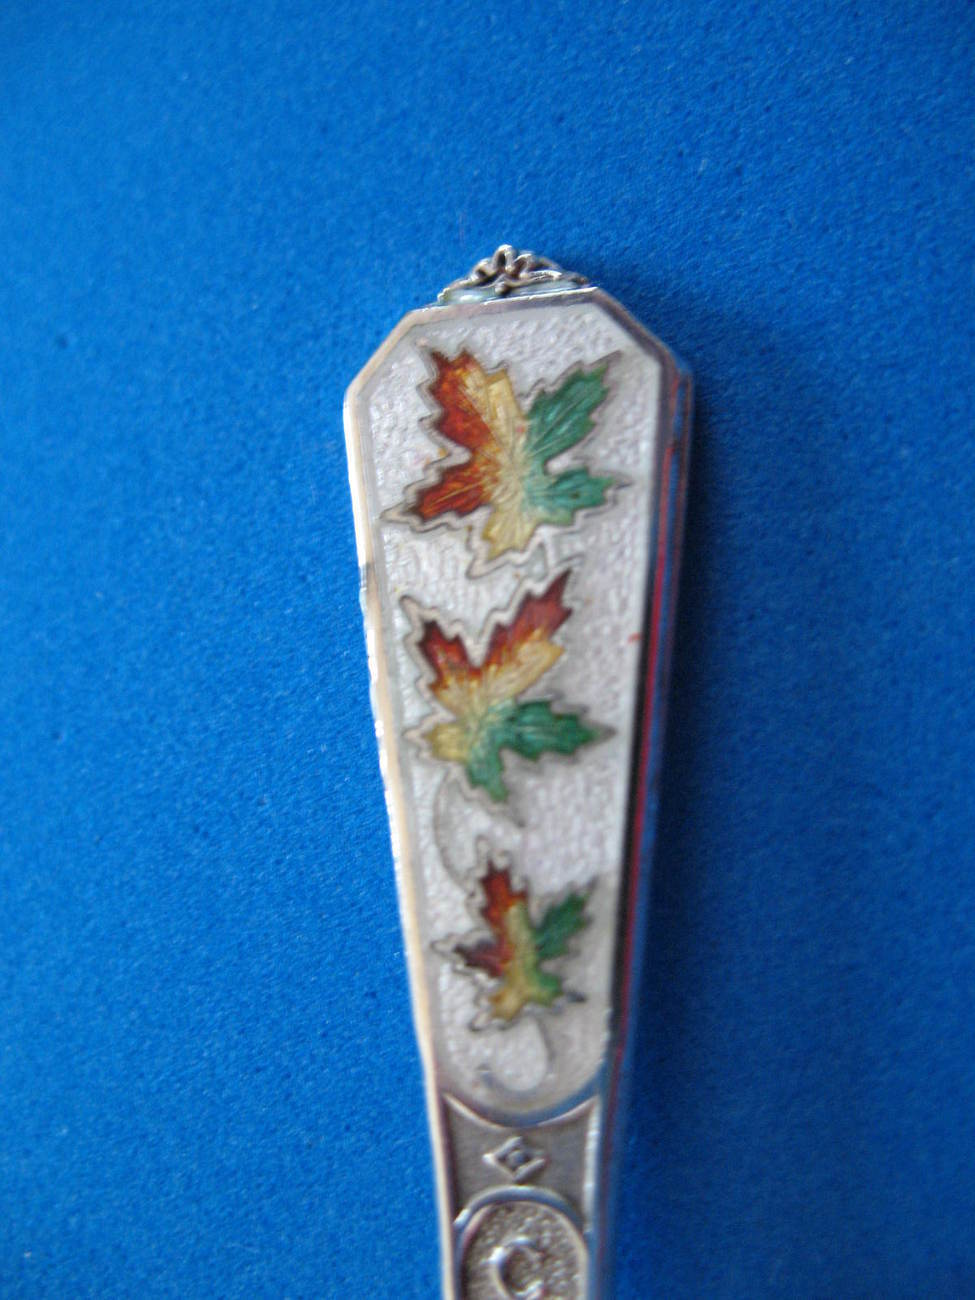 Canada Maple Leafs Sterling Silver Souvenir Spoon Vintage Enamel Collector